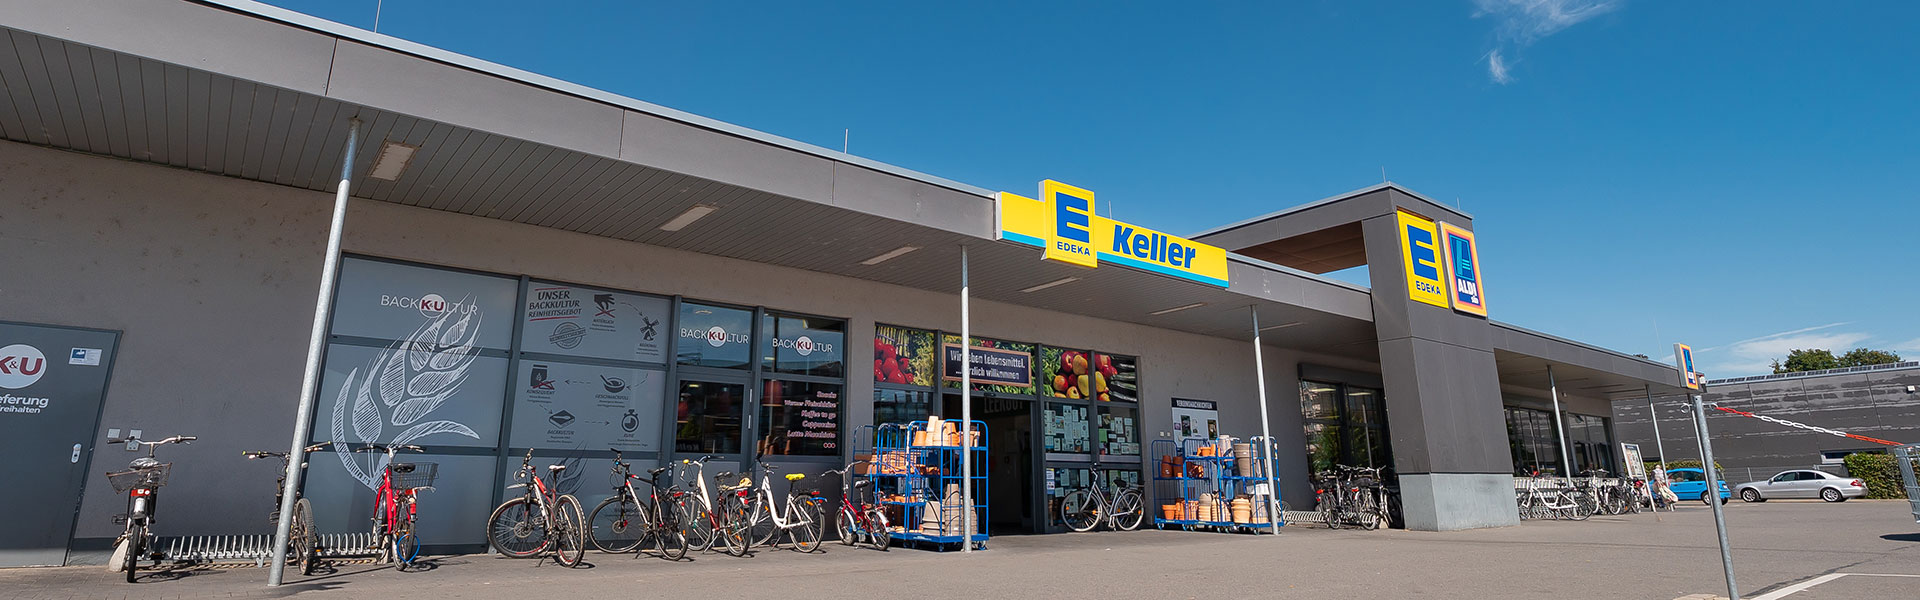 EDEKA Keller in Ladenburg